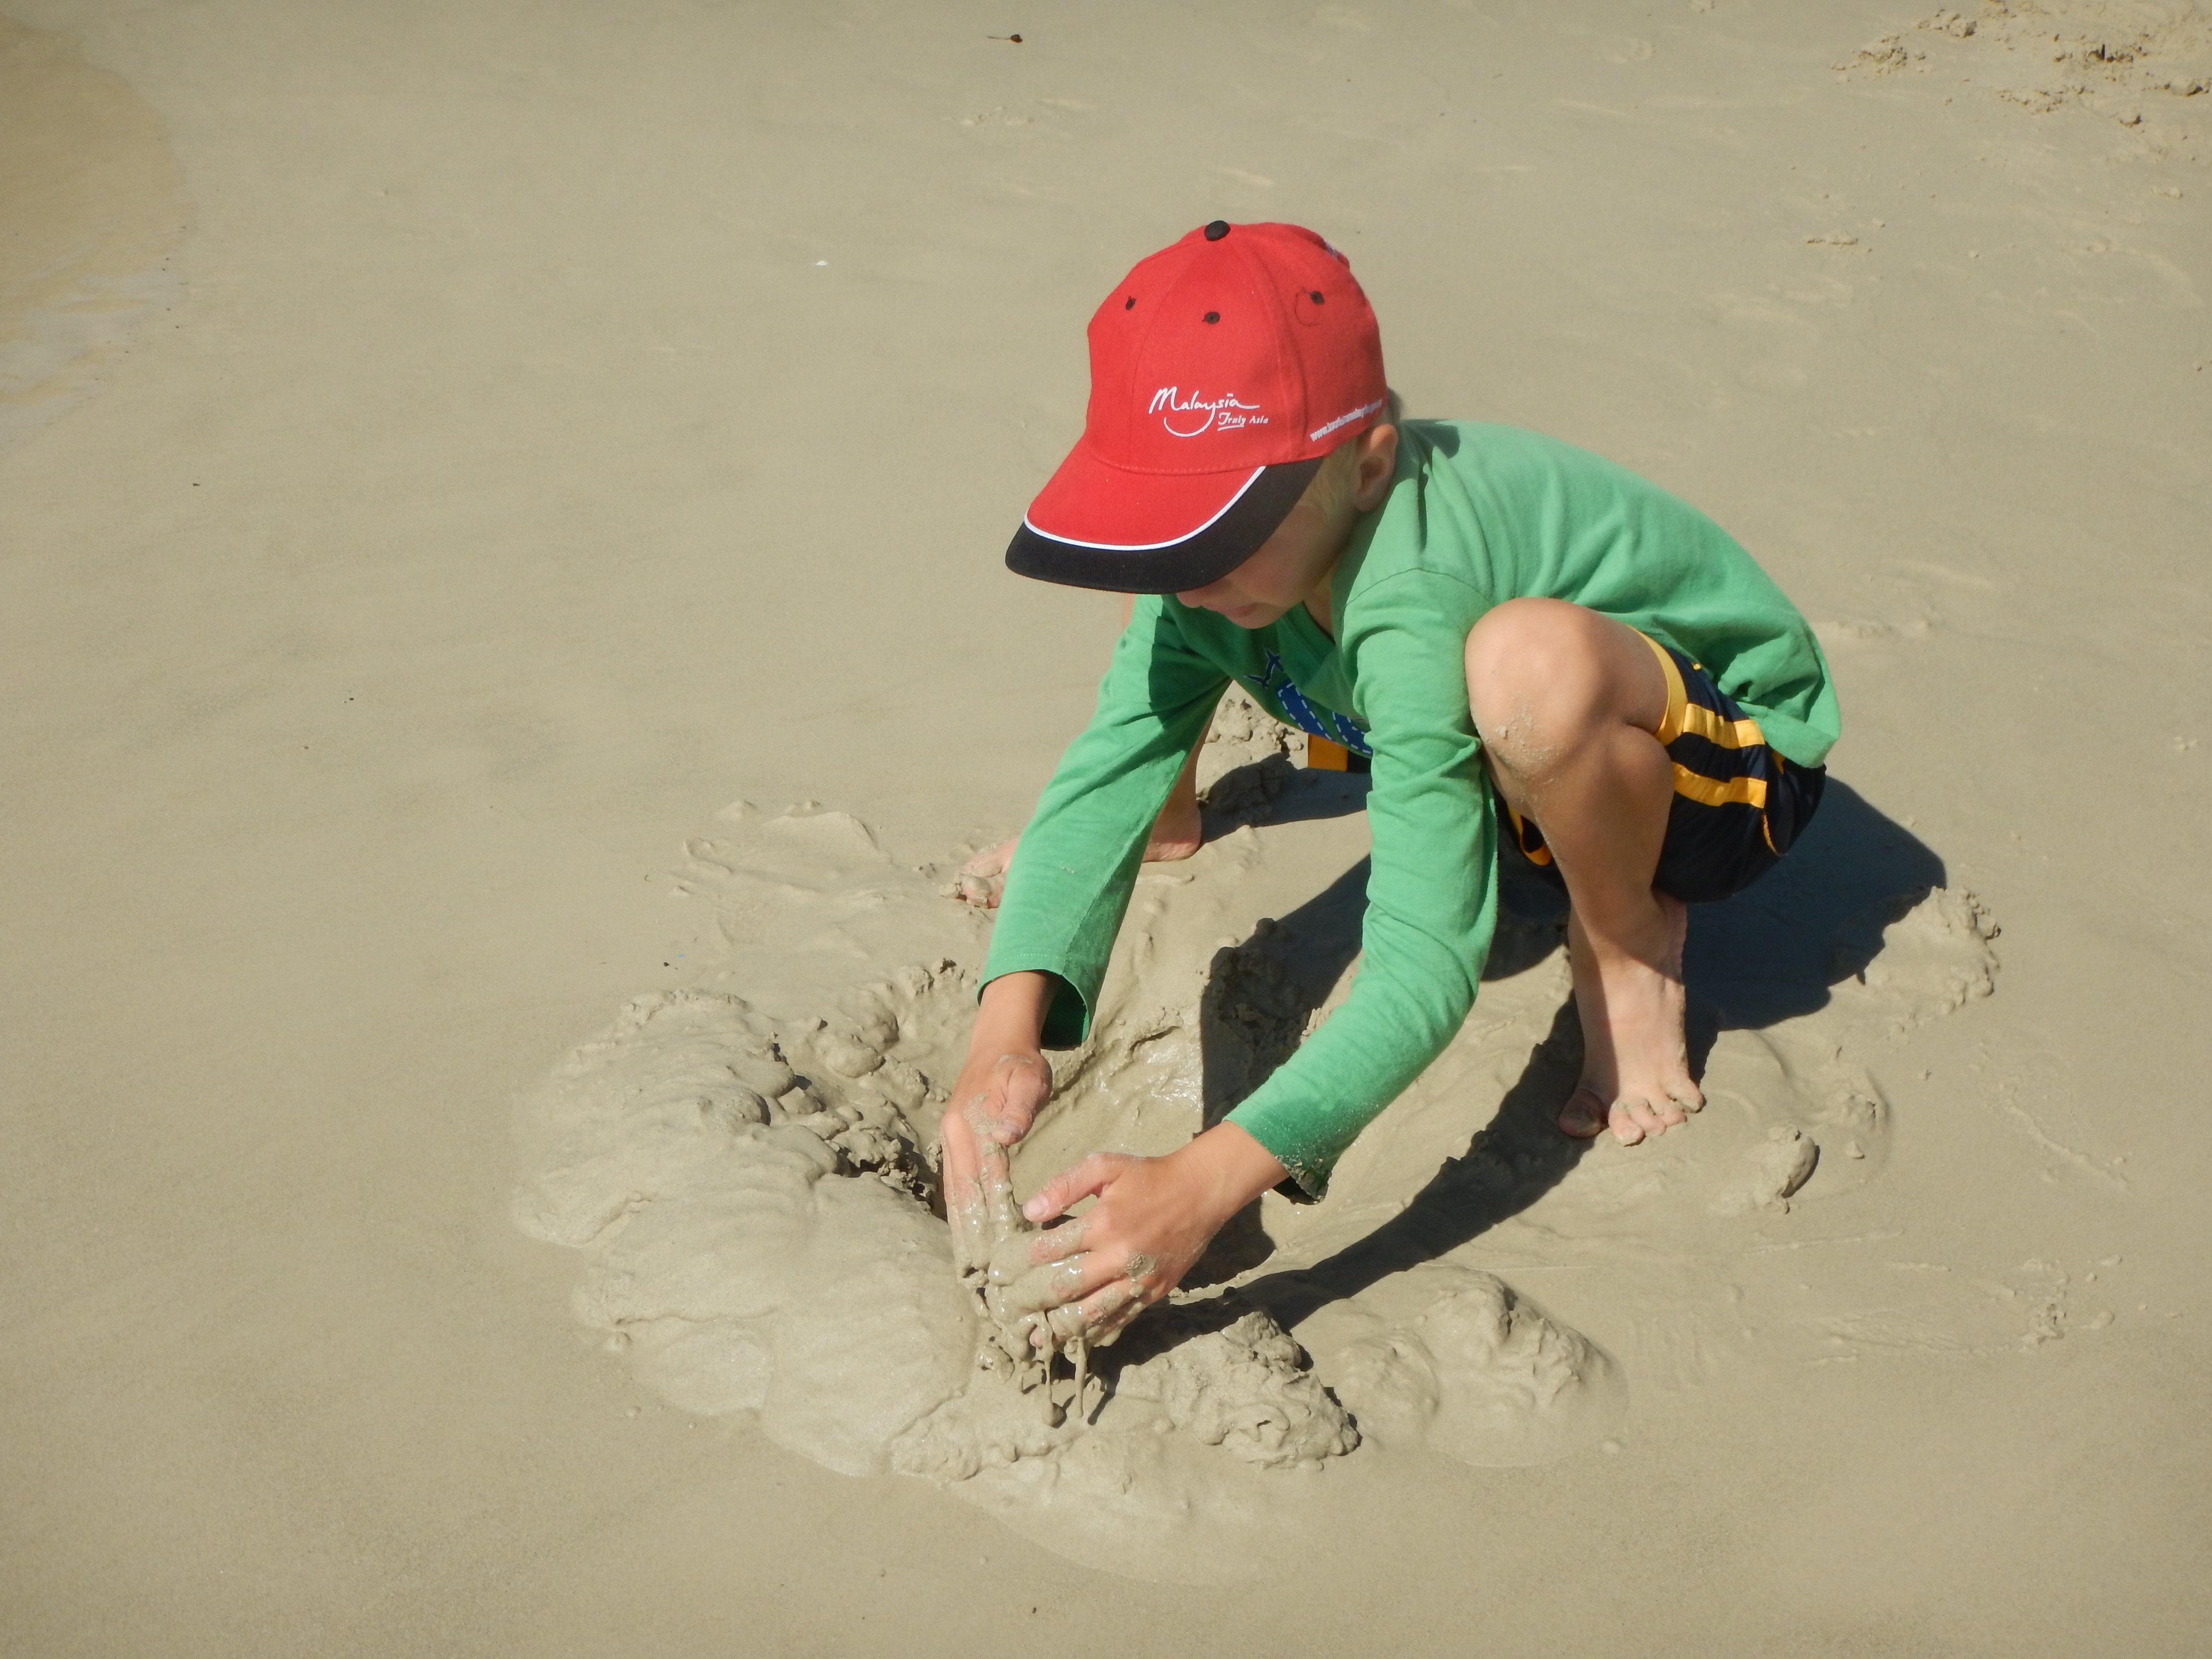 People of all ages are basking in the sun, making sand castles or mimicking whales' breaching behaviour in the water.